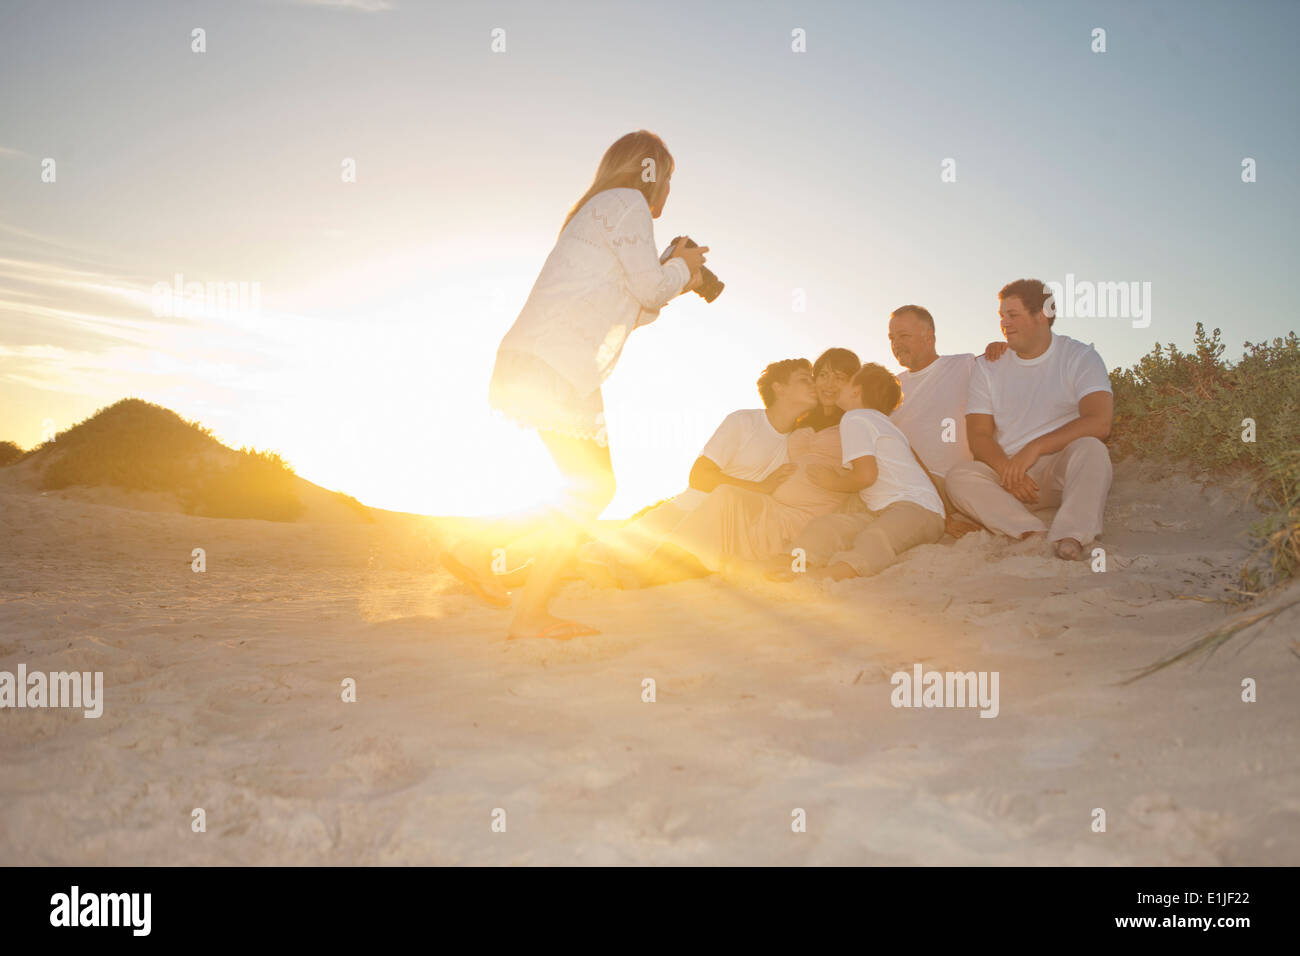 Photographer taking family portrait on beach, Cape Town, South Africa - Stock Image